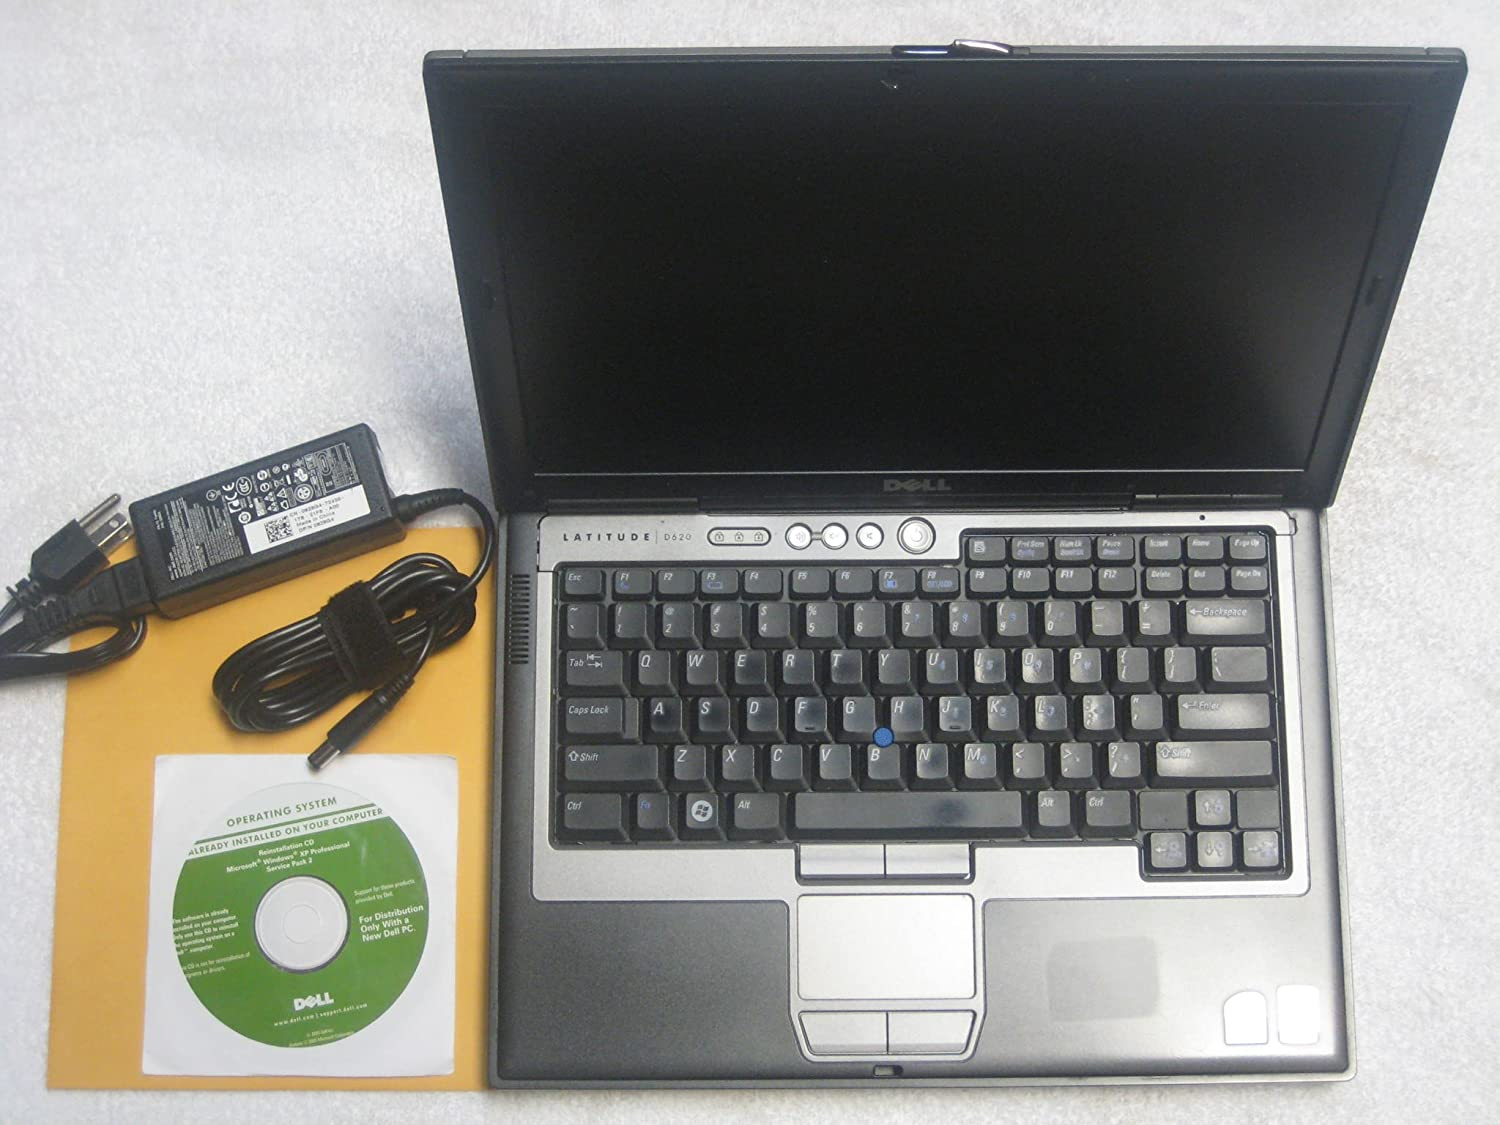 "Dell Latitude D630 14.1"" Laptop (Intel Core 2 Duo 2.0Ghz, 160GB Hard Drive, 2048Mb RAM, DVD/CDRW Drive, XP Profesional)"